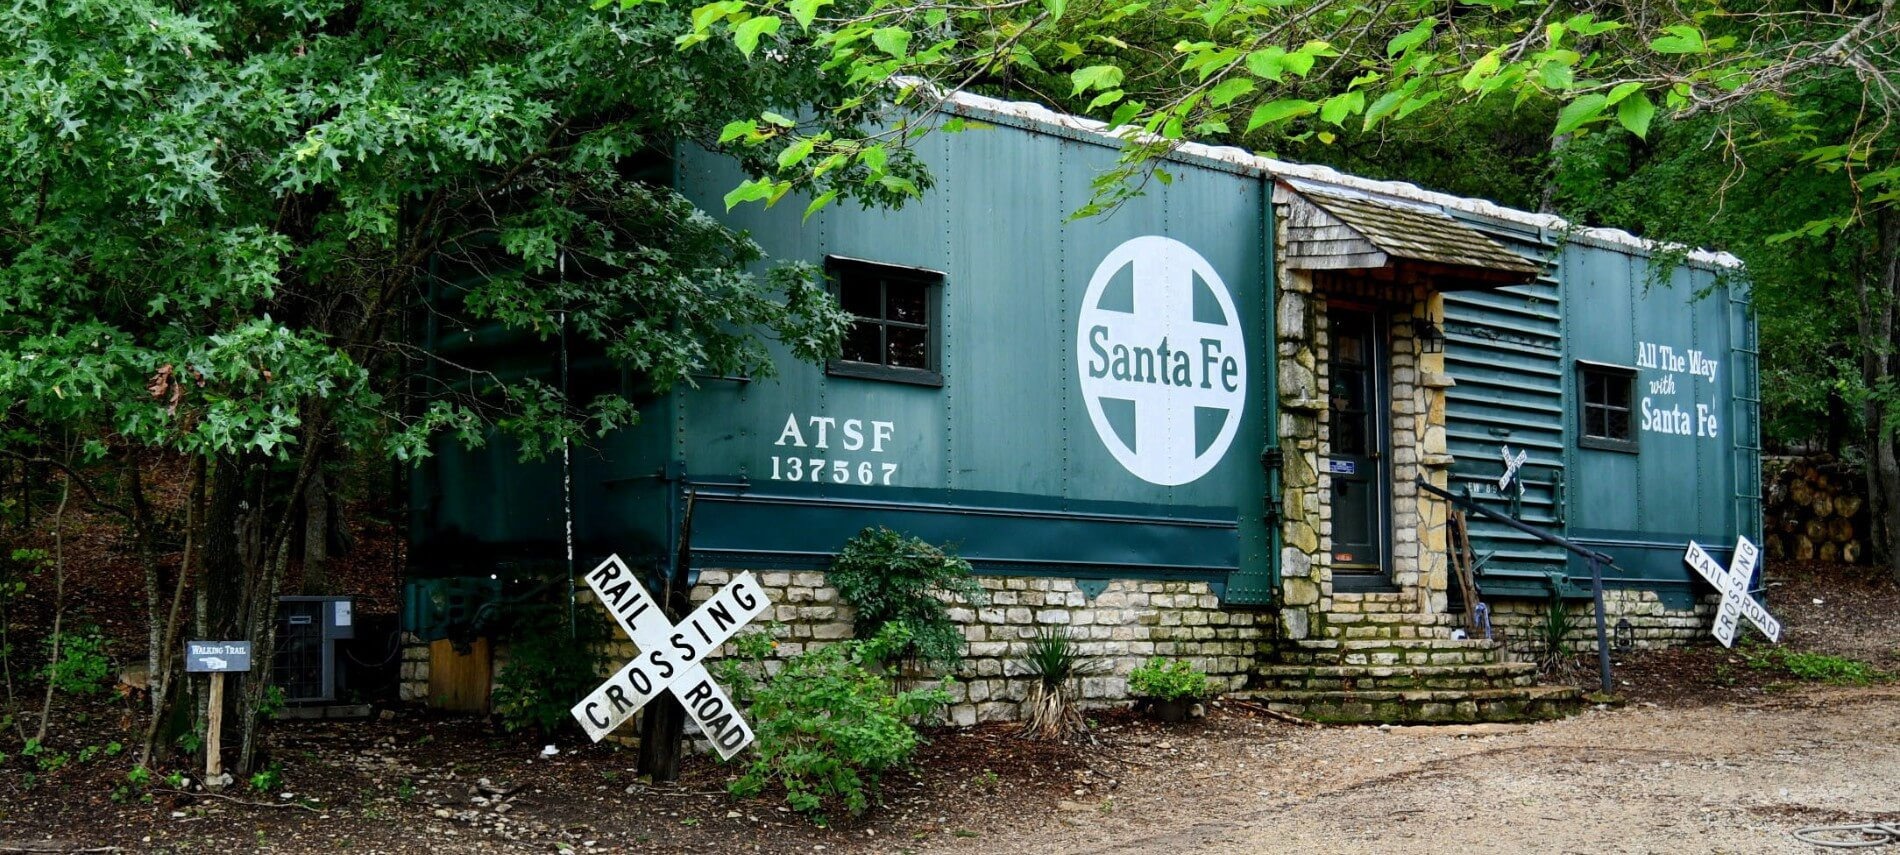 An old green Santa Fe railroad car on a stone foundation with a small stone porch leading to a door.